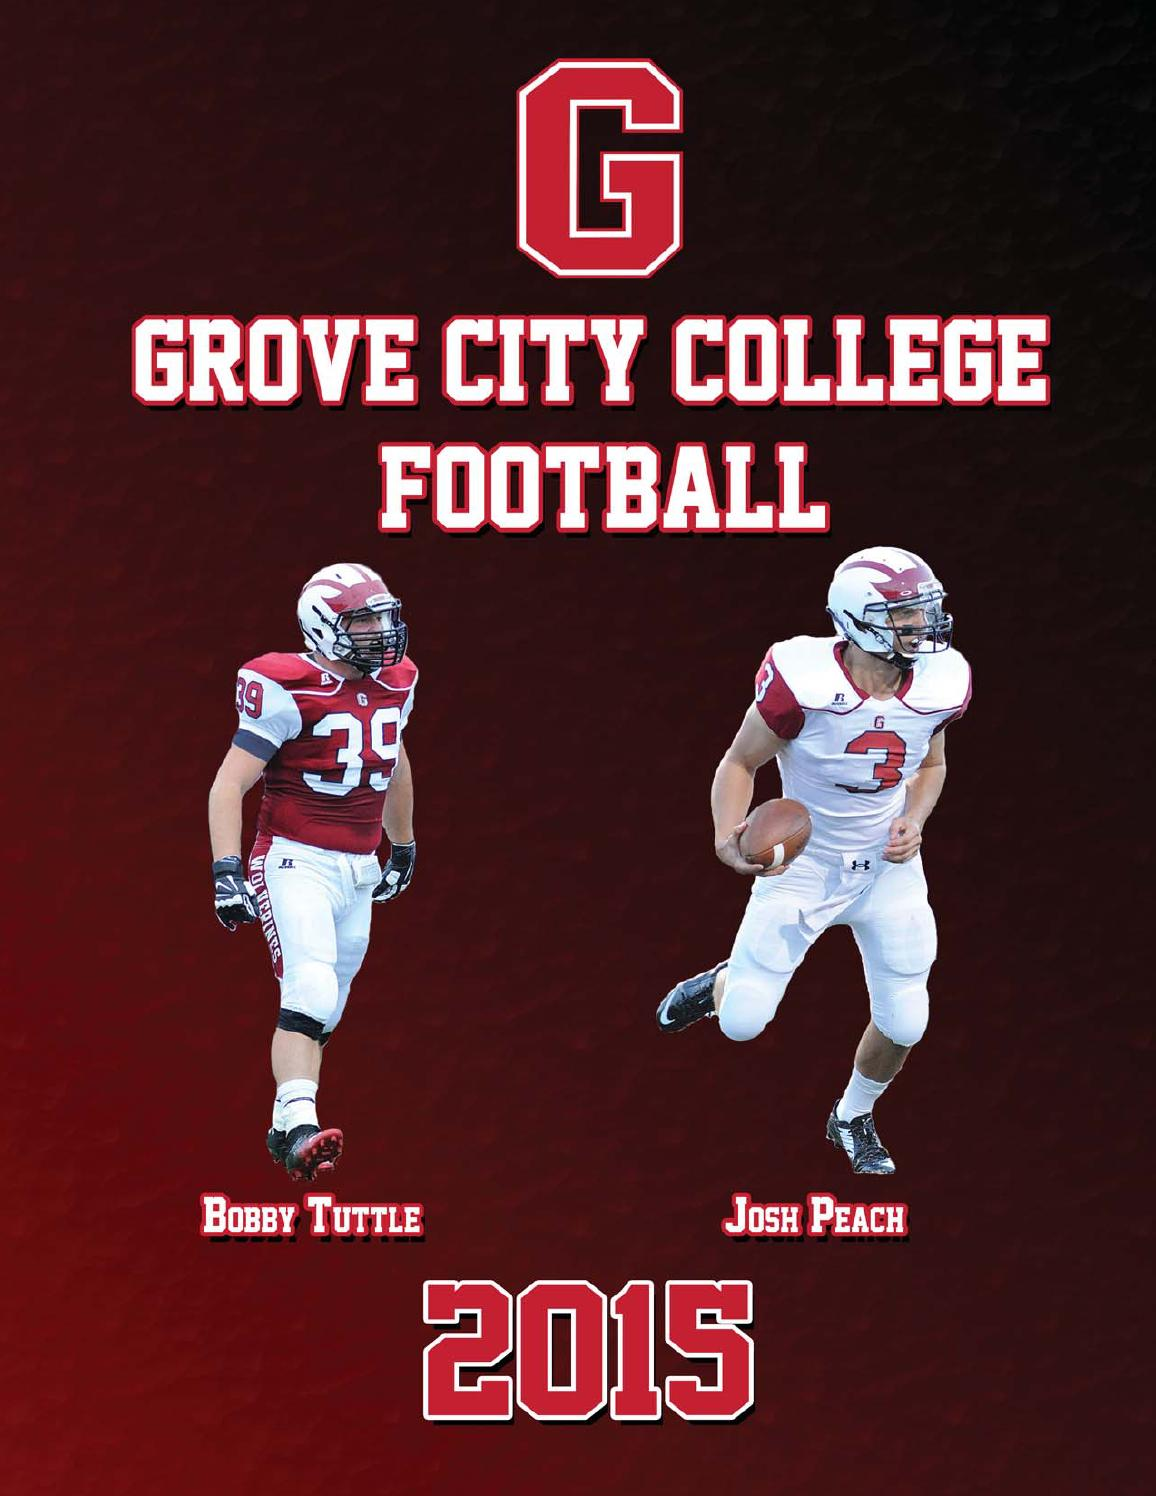 0bf8cd7f2 2015 Grove City College Football Media Guide by Grove City College - issuu